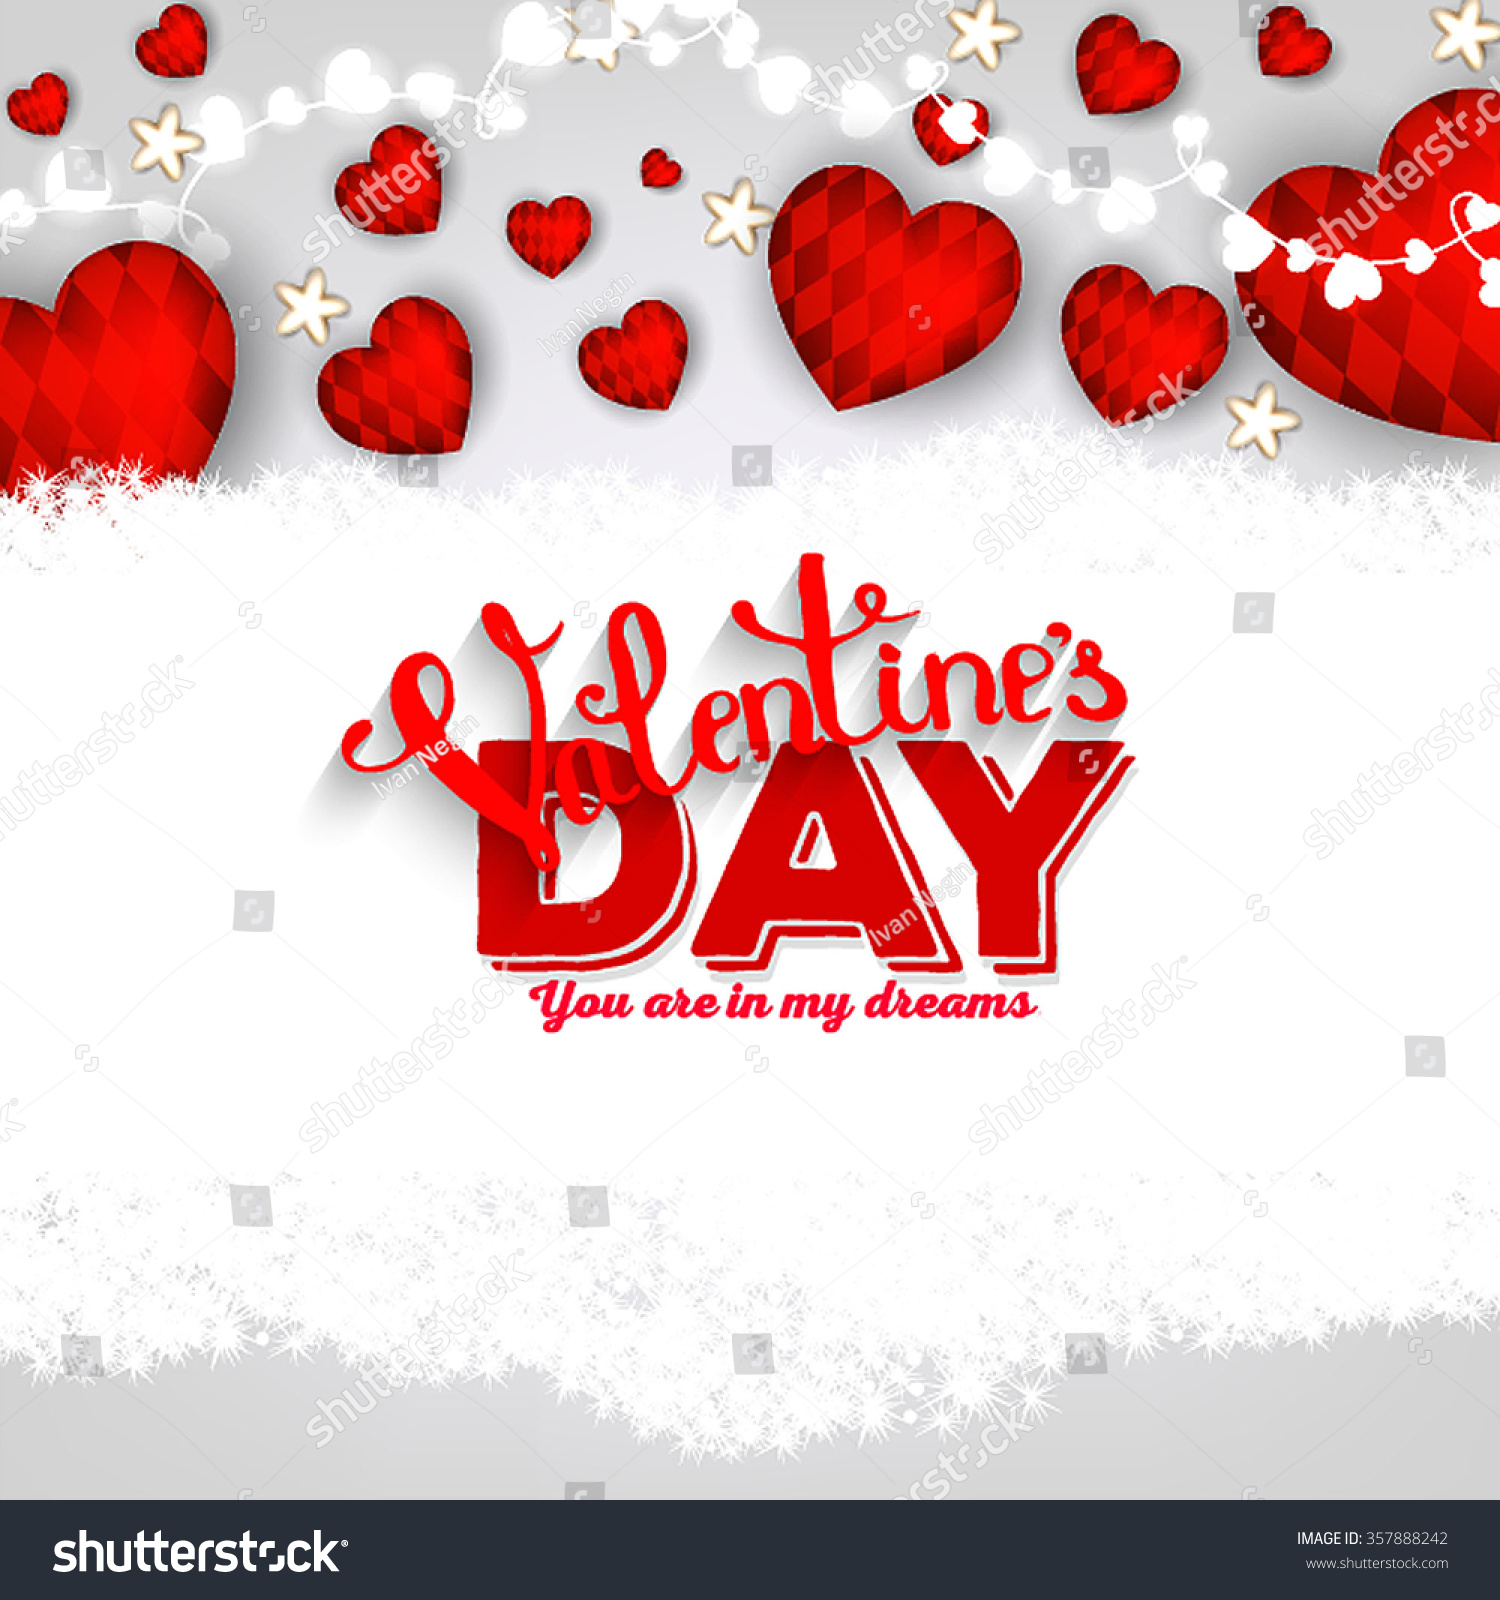 Valentines Day Party Invitation Hearts Garland Stock Vector HD ...